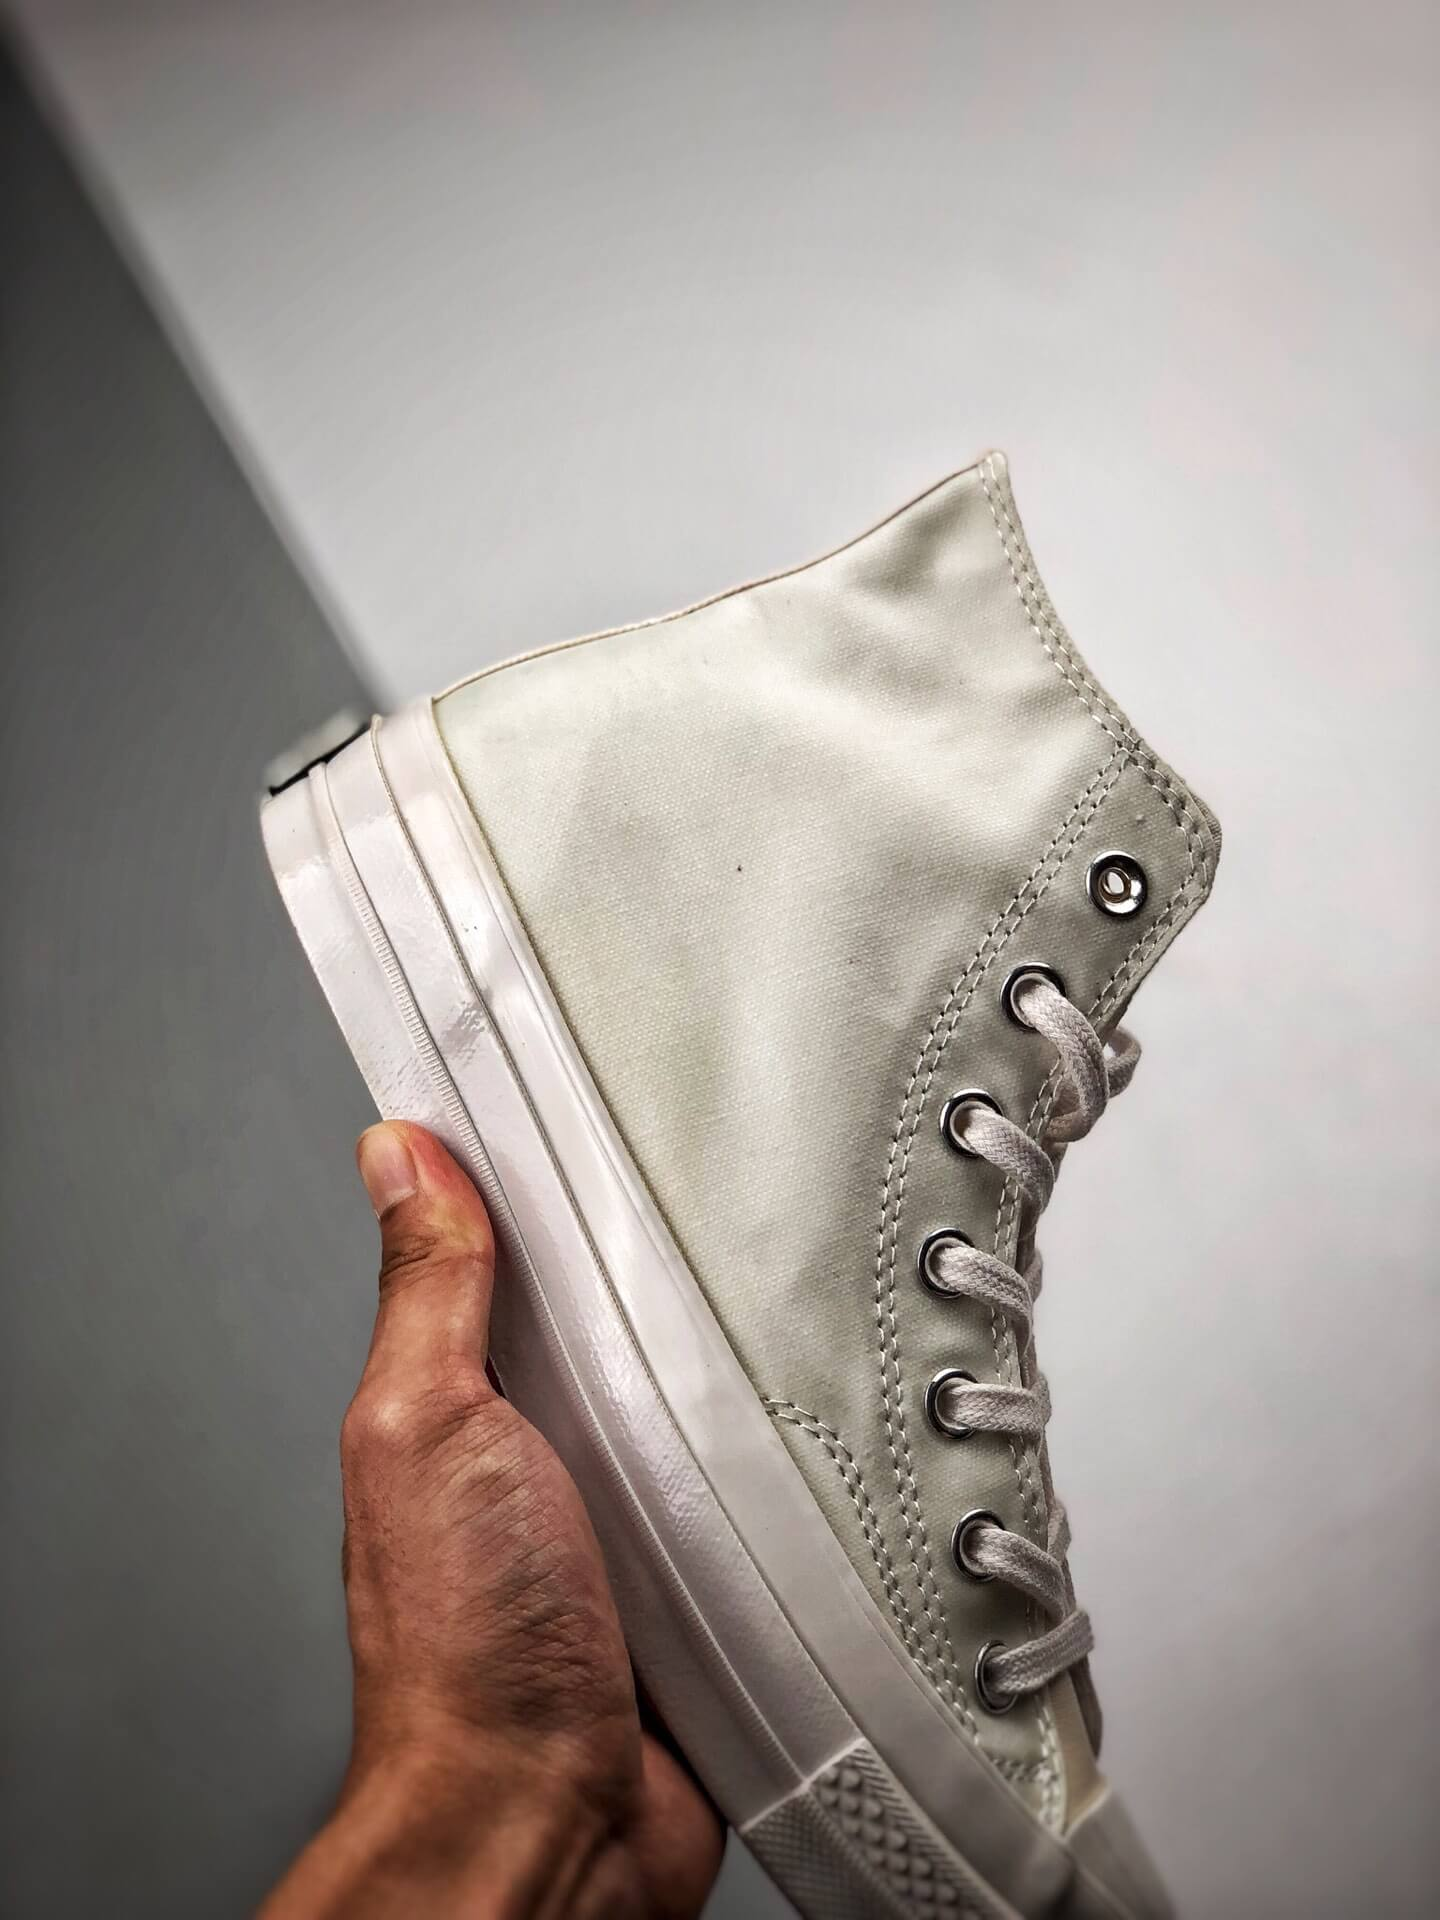 The Converse Chinatown Market x Chuck 70 High UV Lifestyle RepShoes 05